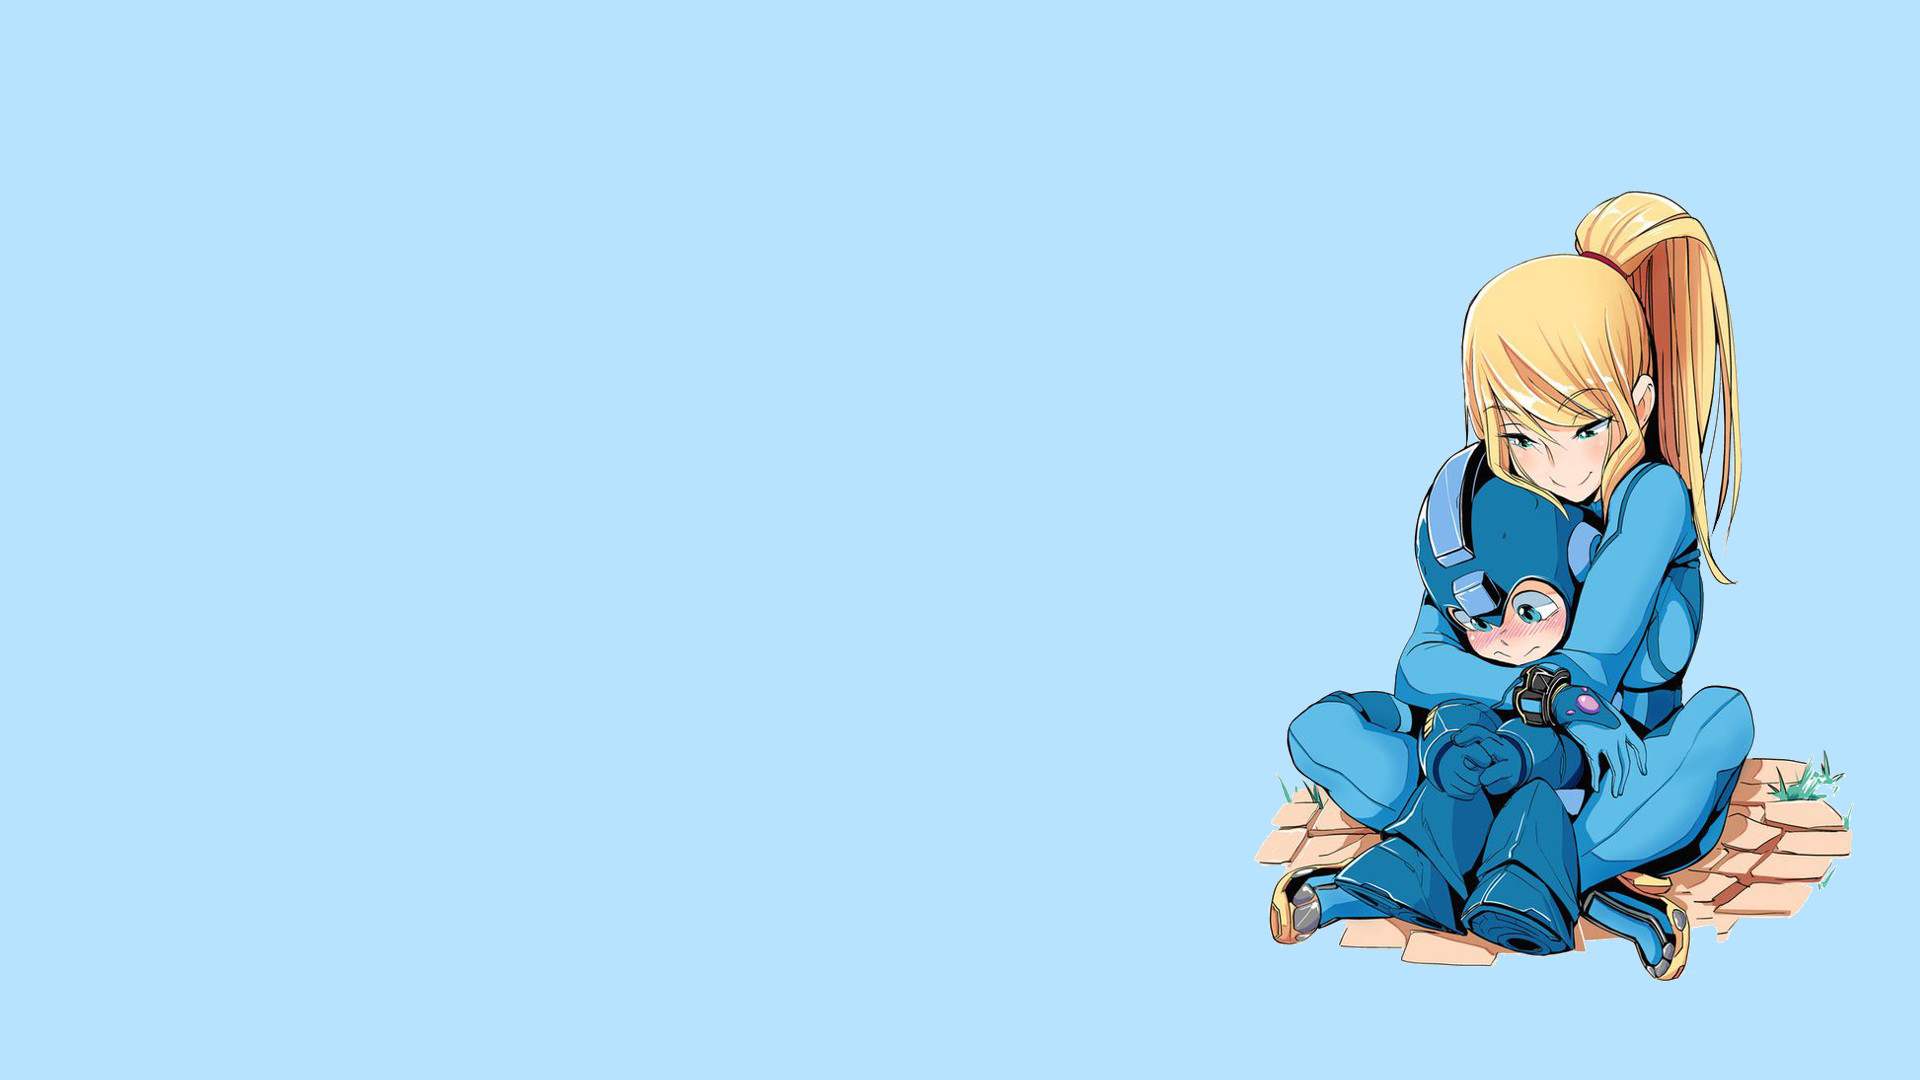 hd backgrounds megaman wallpapers